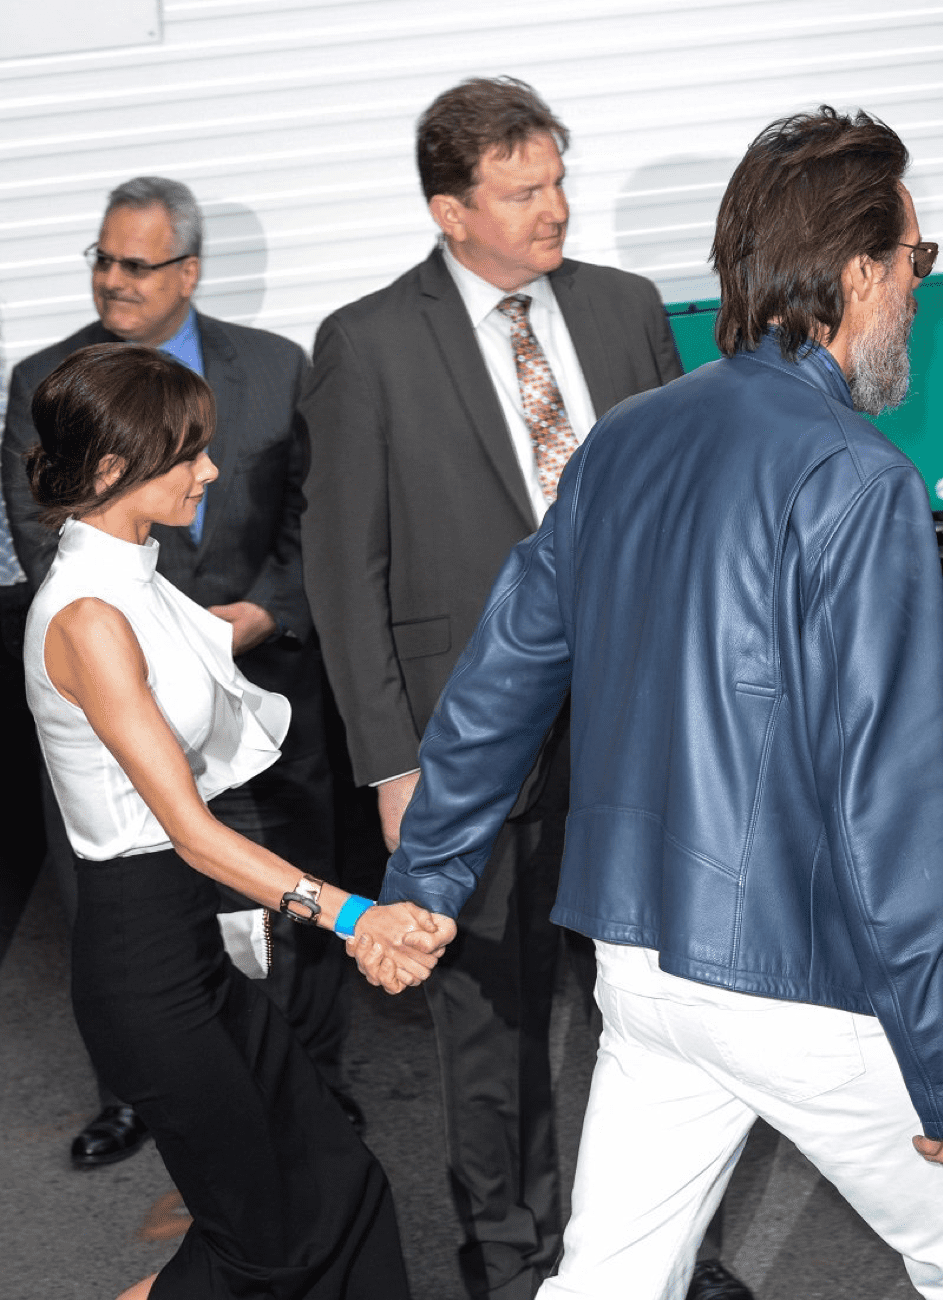 Jim Carrey und Cathriona White am 20. Mai 2015 in New York.   Quelle: Getty Images